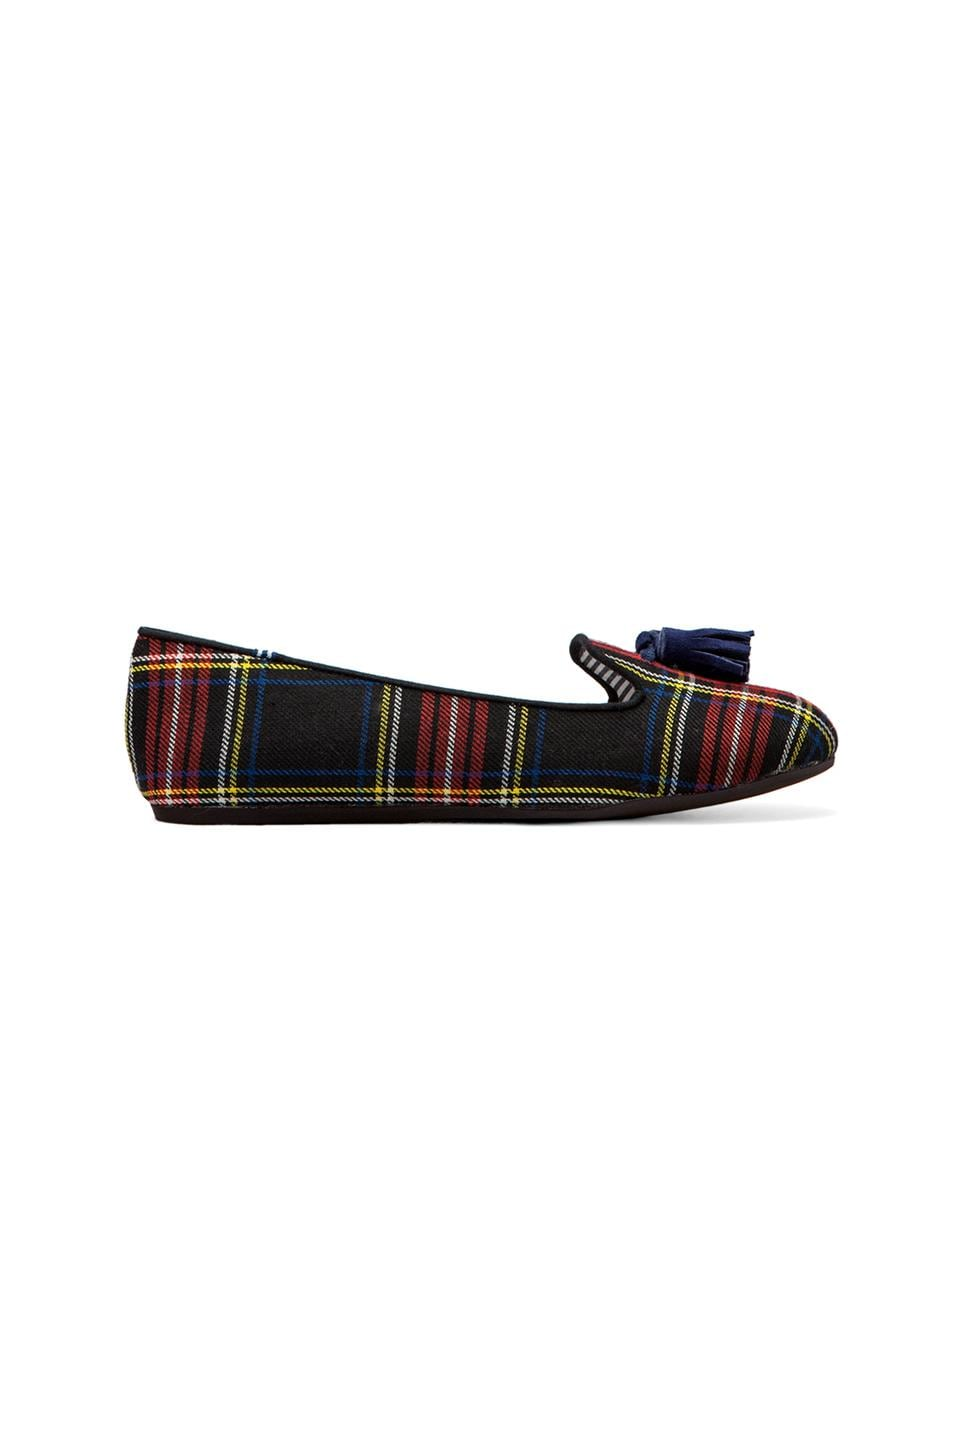 Charles Philip Shanghai Lana Wool Plaid Flat with Tassel in Scottish Red/ Navy